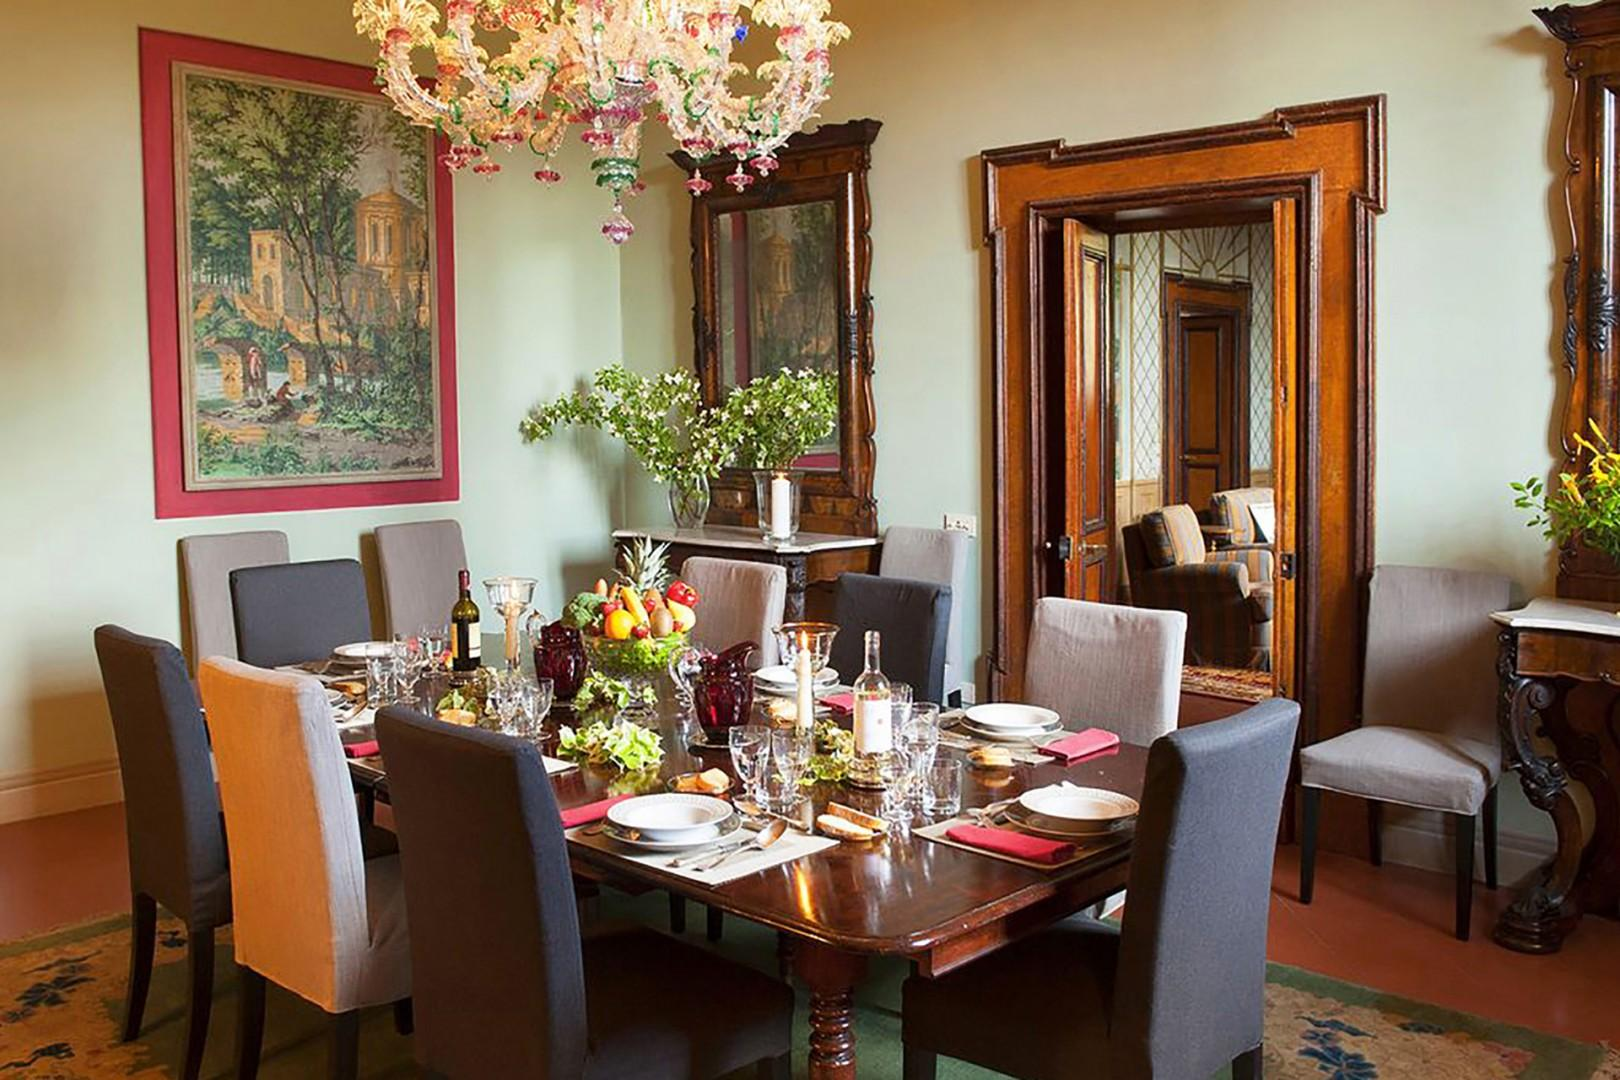 Dine in style in the elegant dining room with gorgeous Venetian glass chandelier.